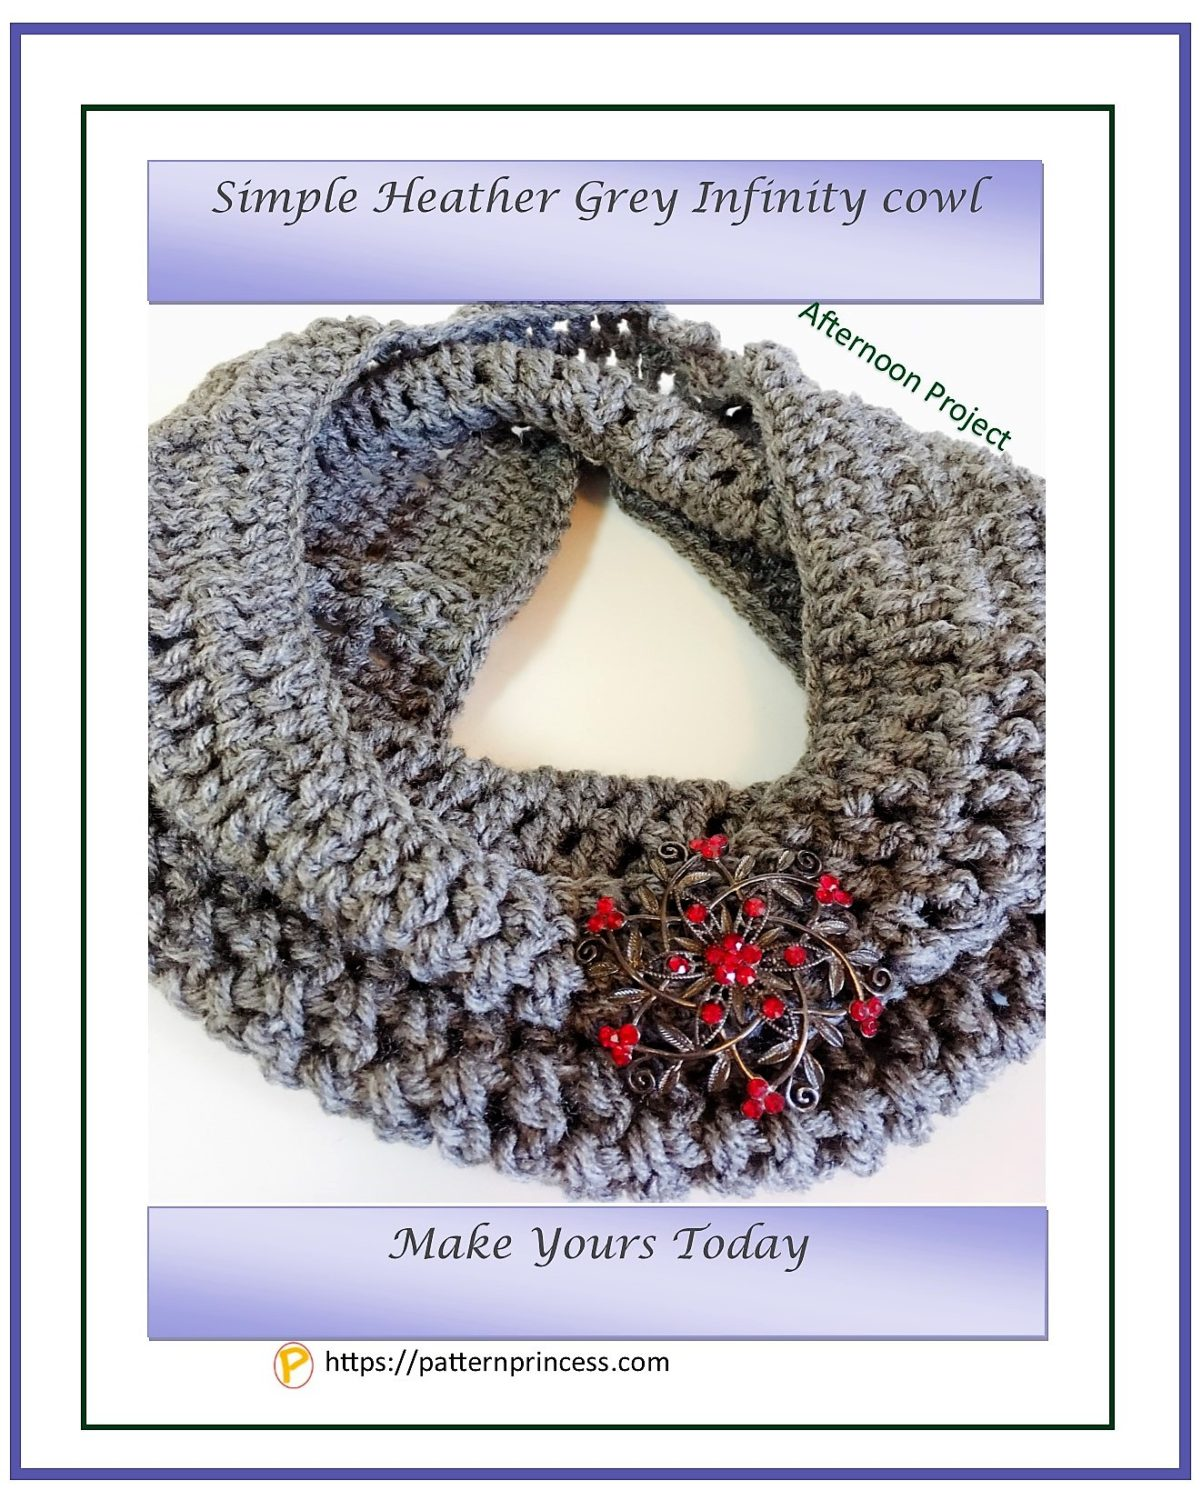 Simple Heather Grey Infinity Cowl 1